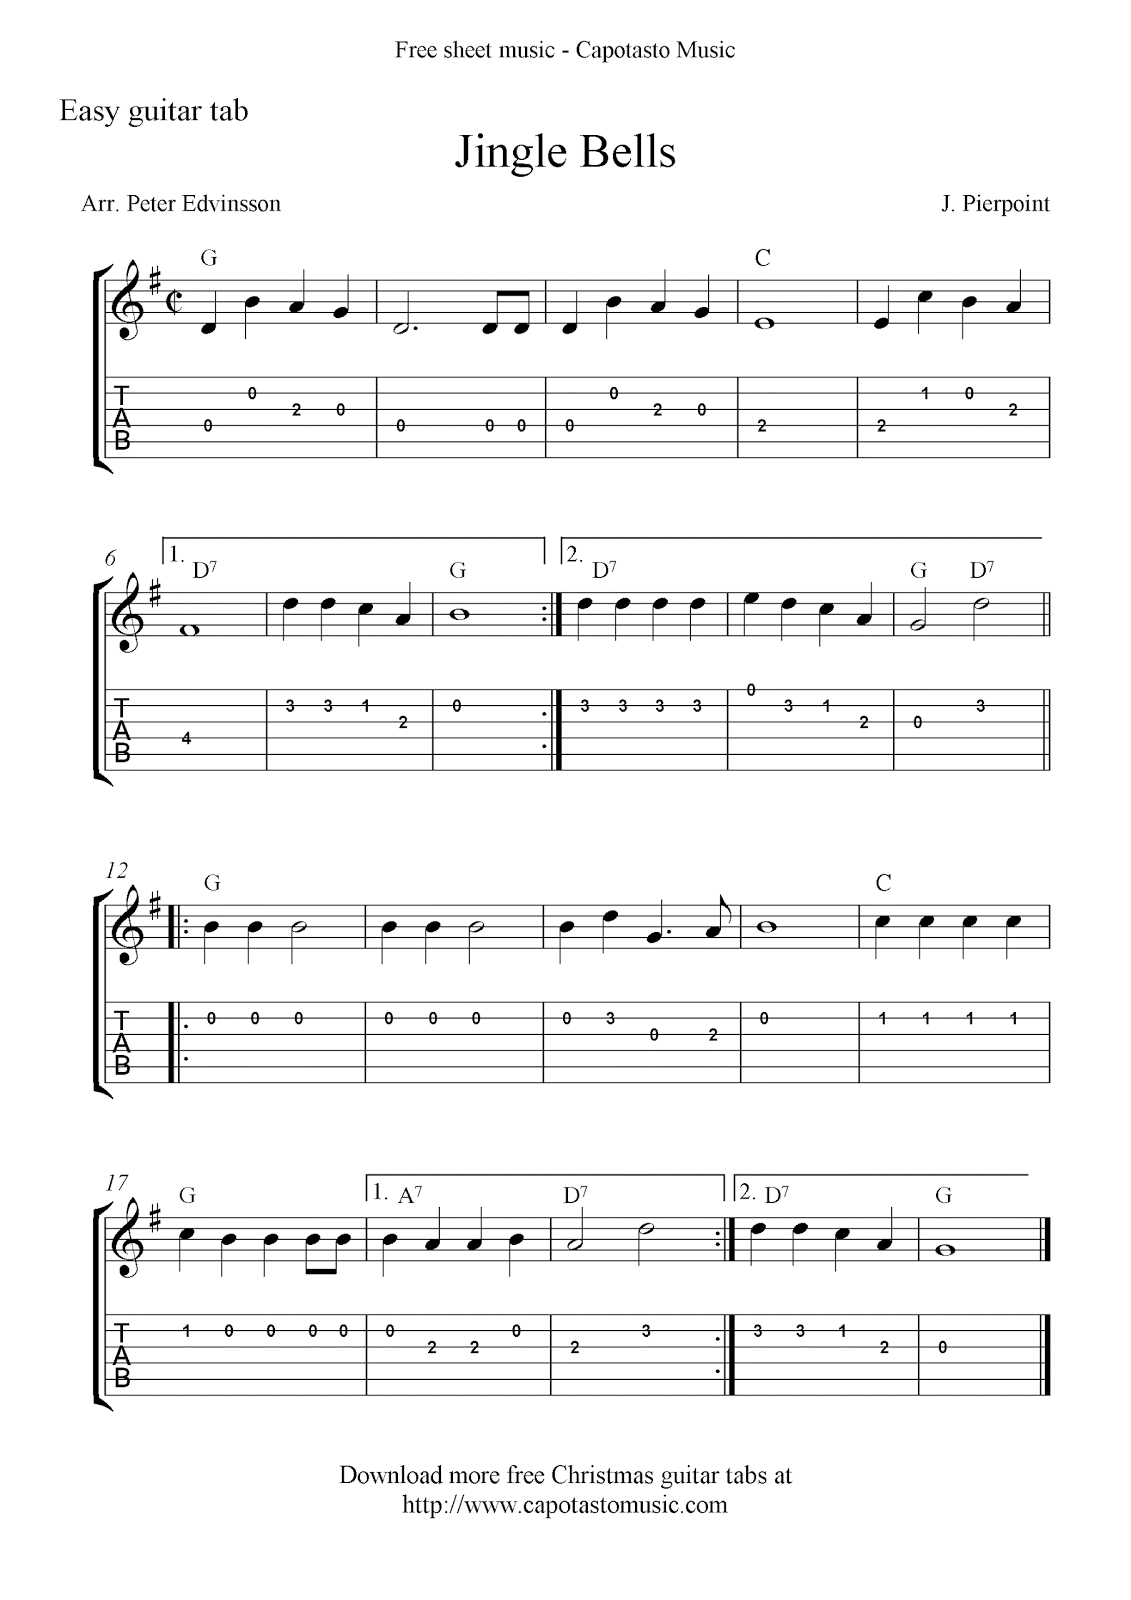 Jingle Bells, free Christmas guitar tabs and sheet music